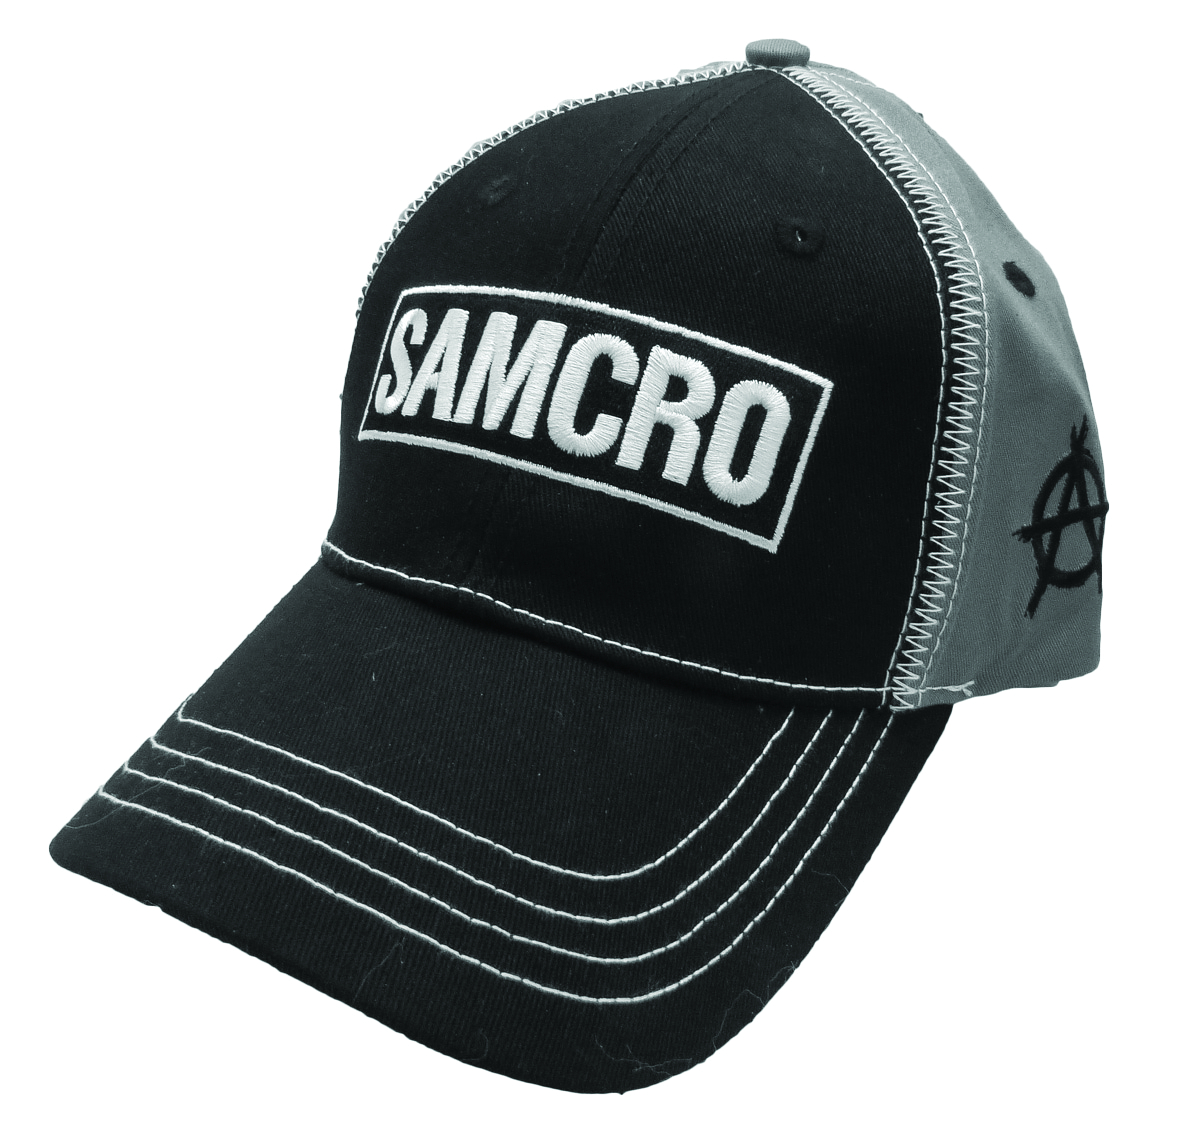 SONS OF ANARCHY SAMCRO CAP